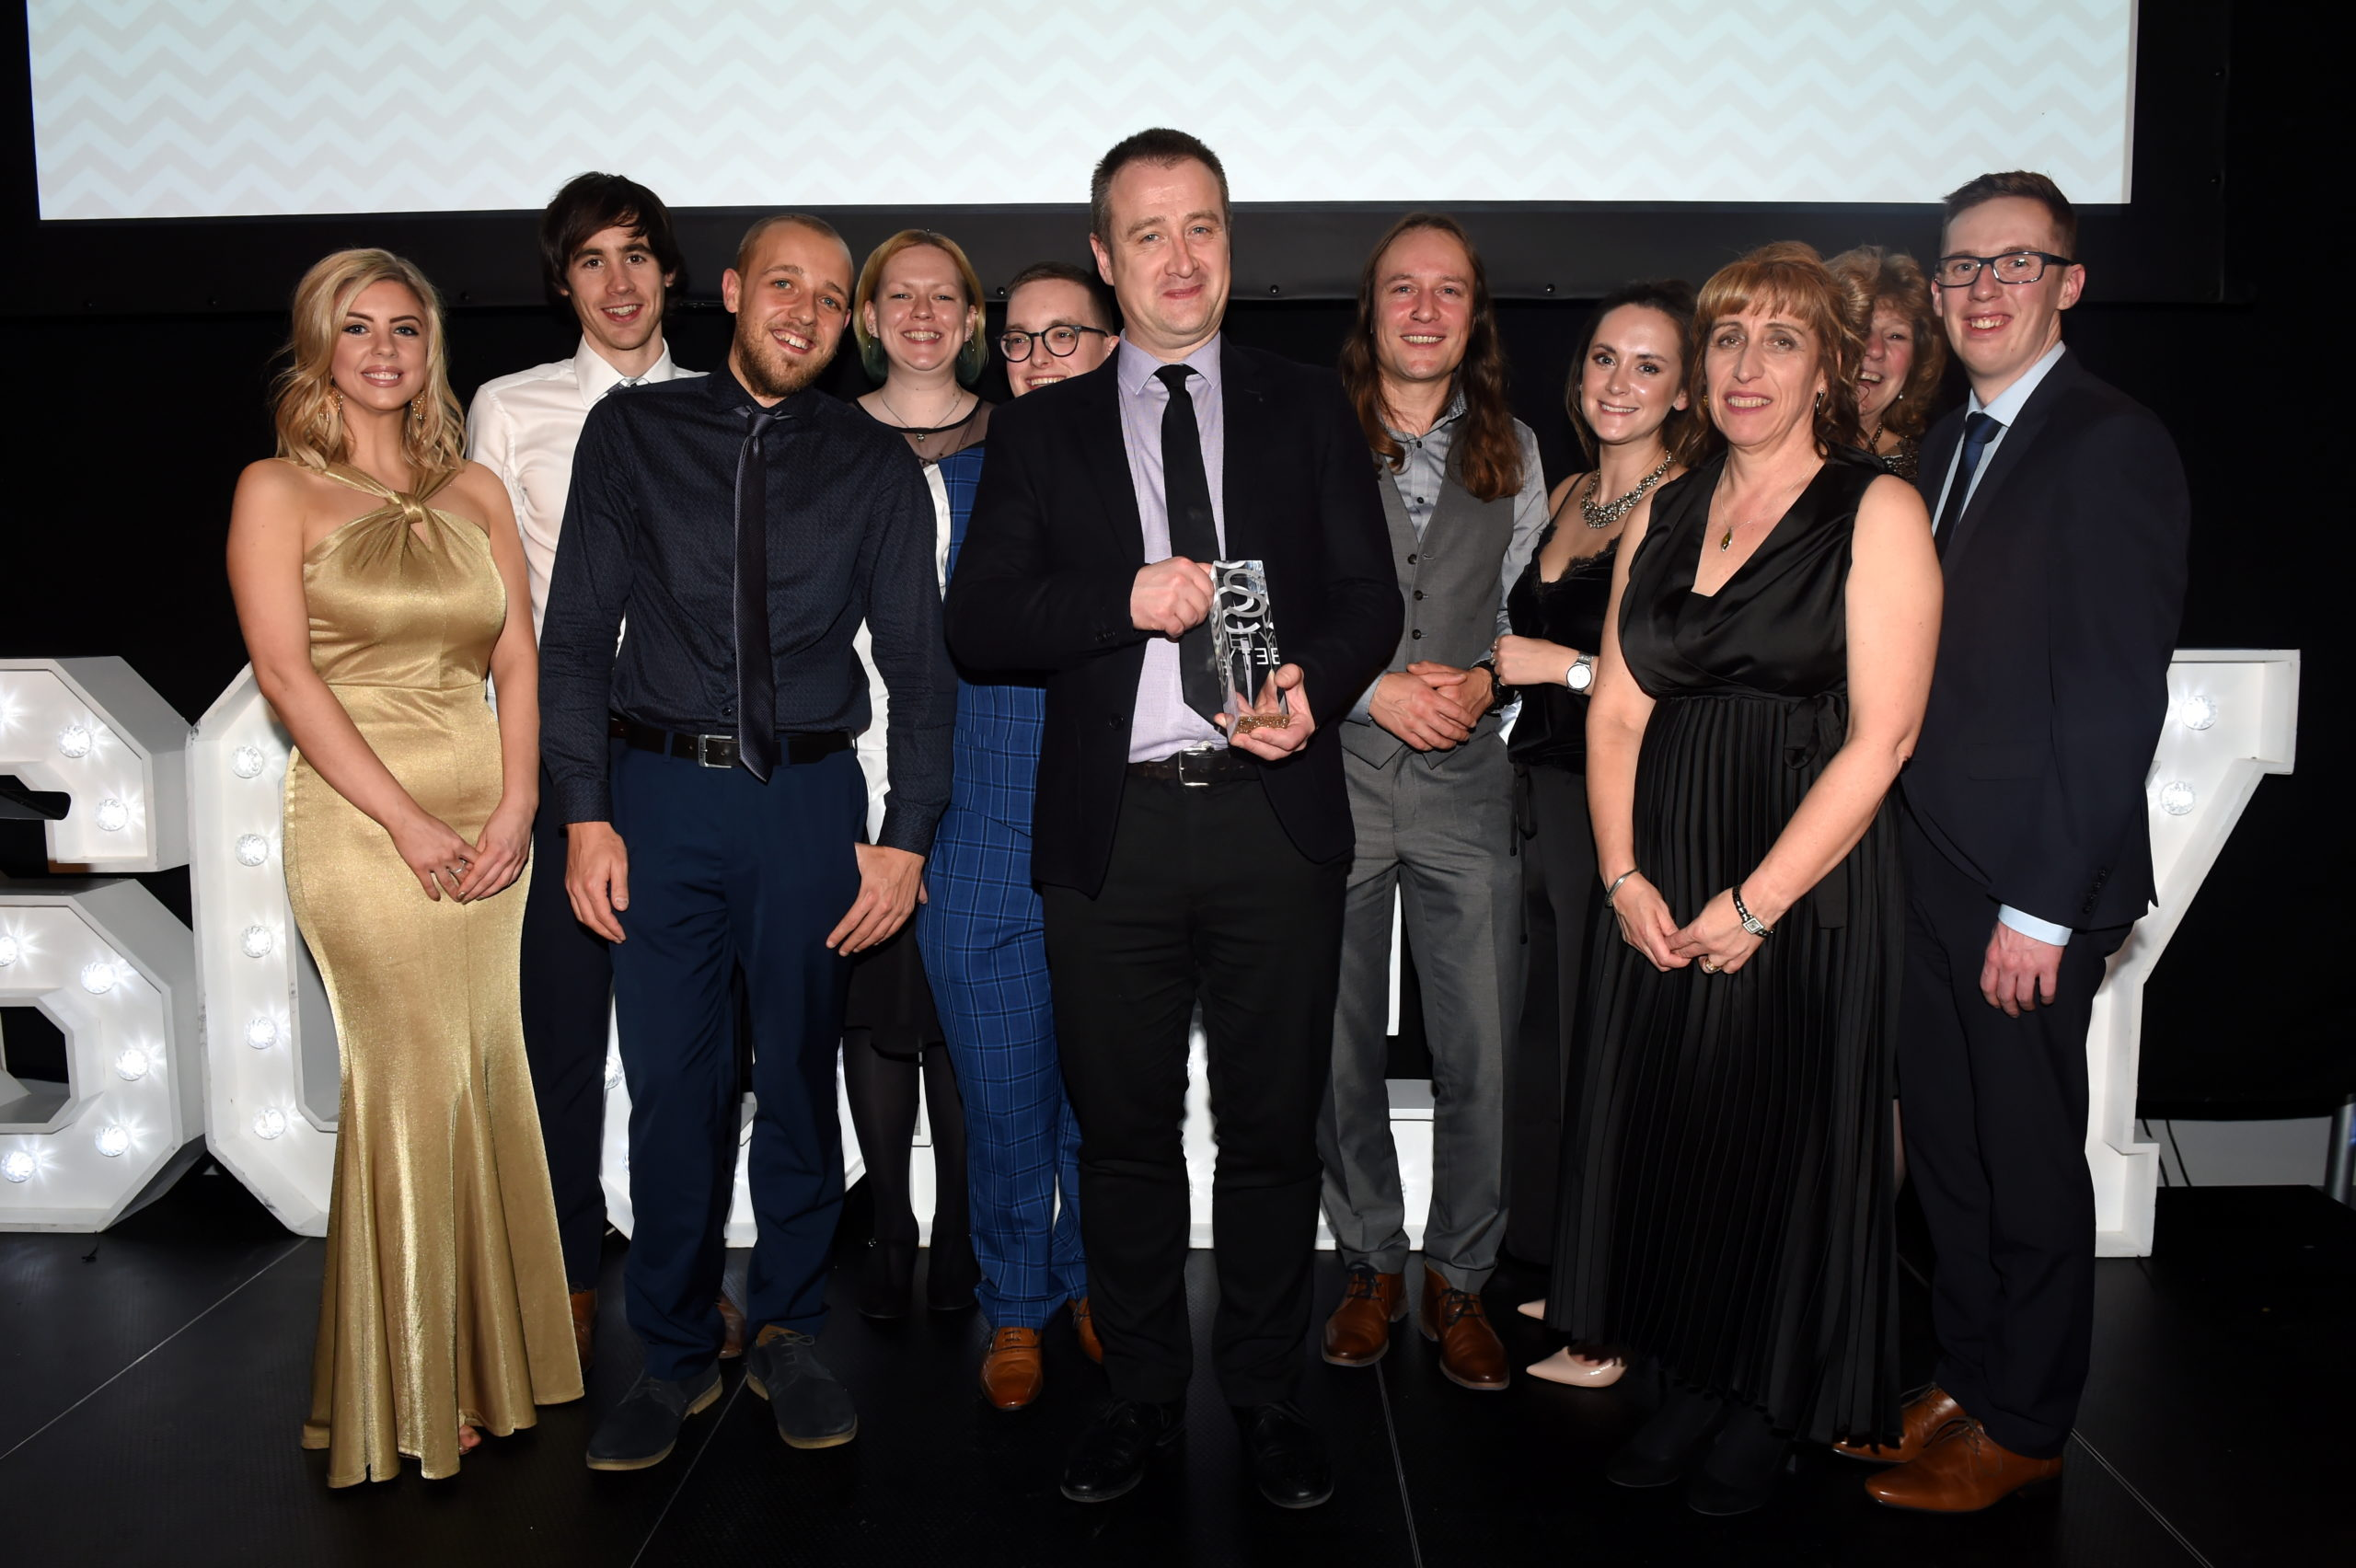 Sport Aberdeen received the accolade for Leisure/Fitness Facility of the Year at the inaugural Society Awards.